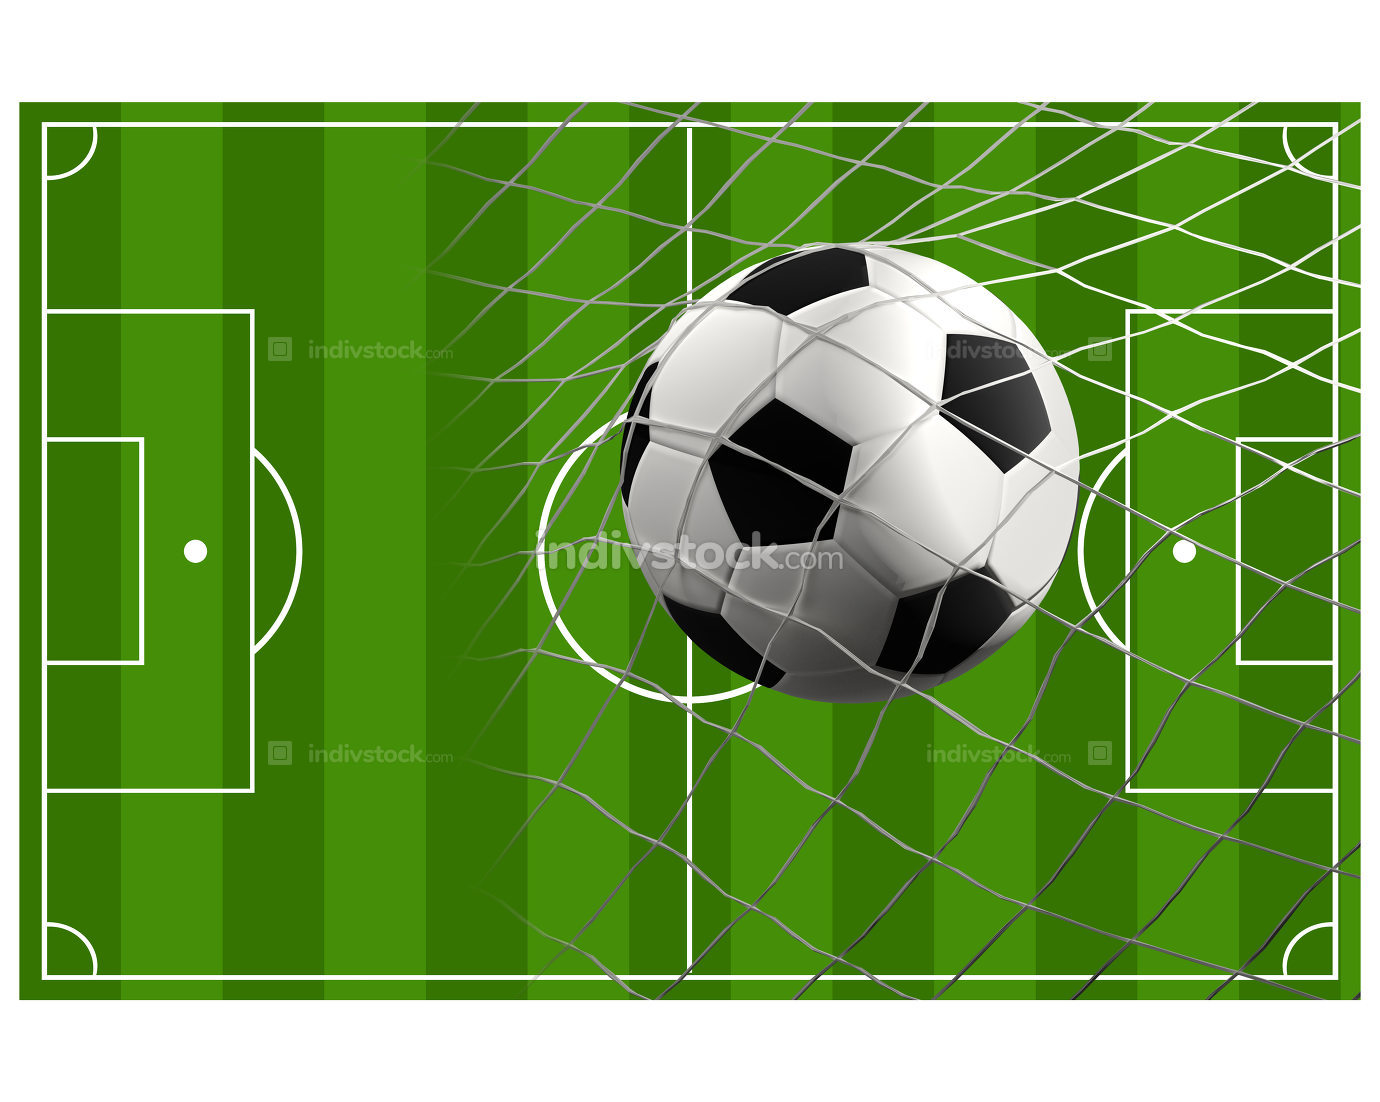 free download: soccer field soccer ball 3d illustration